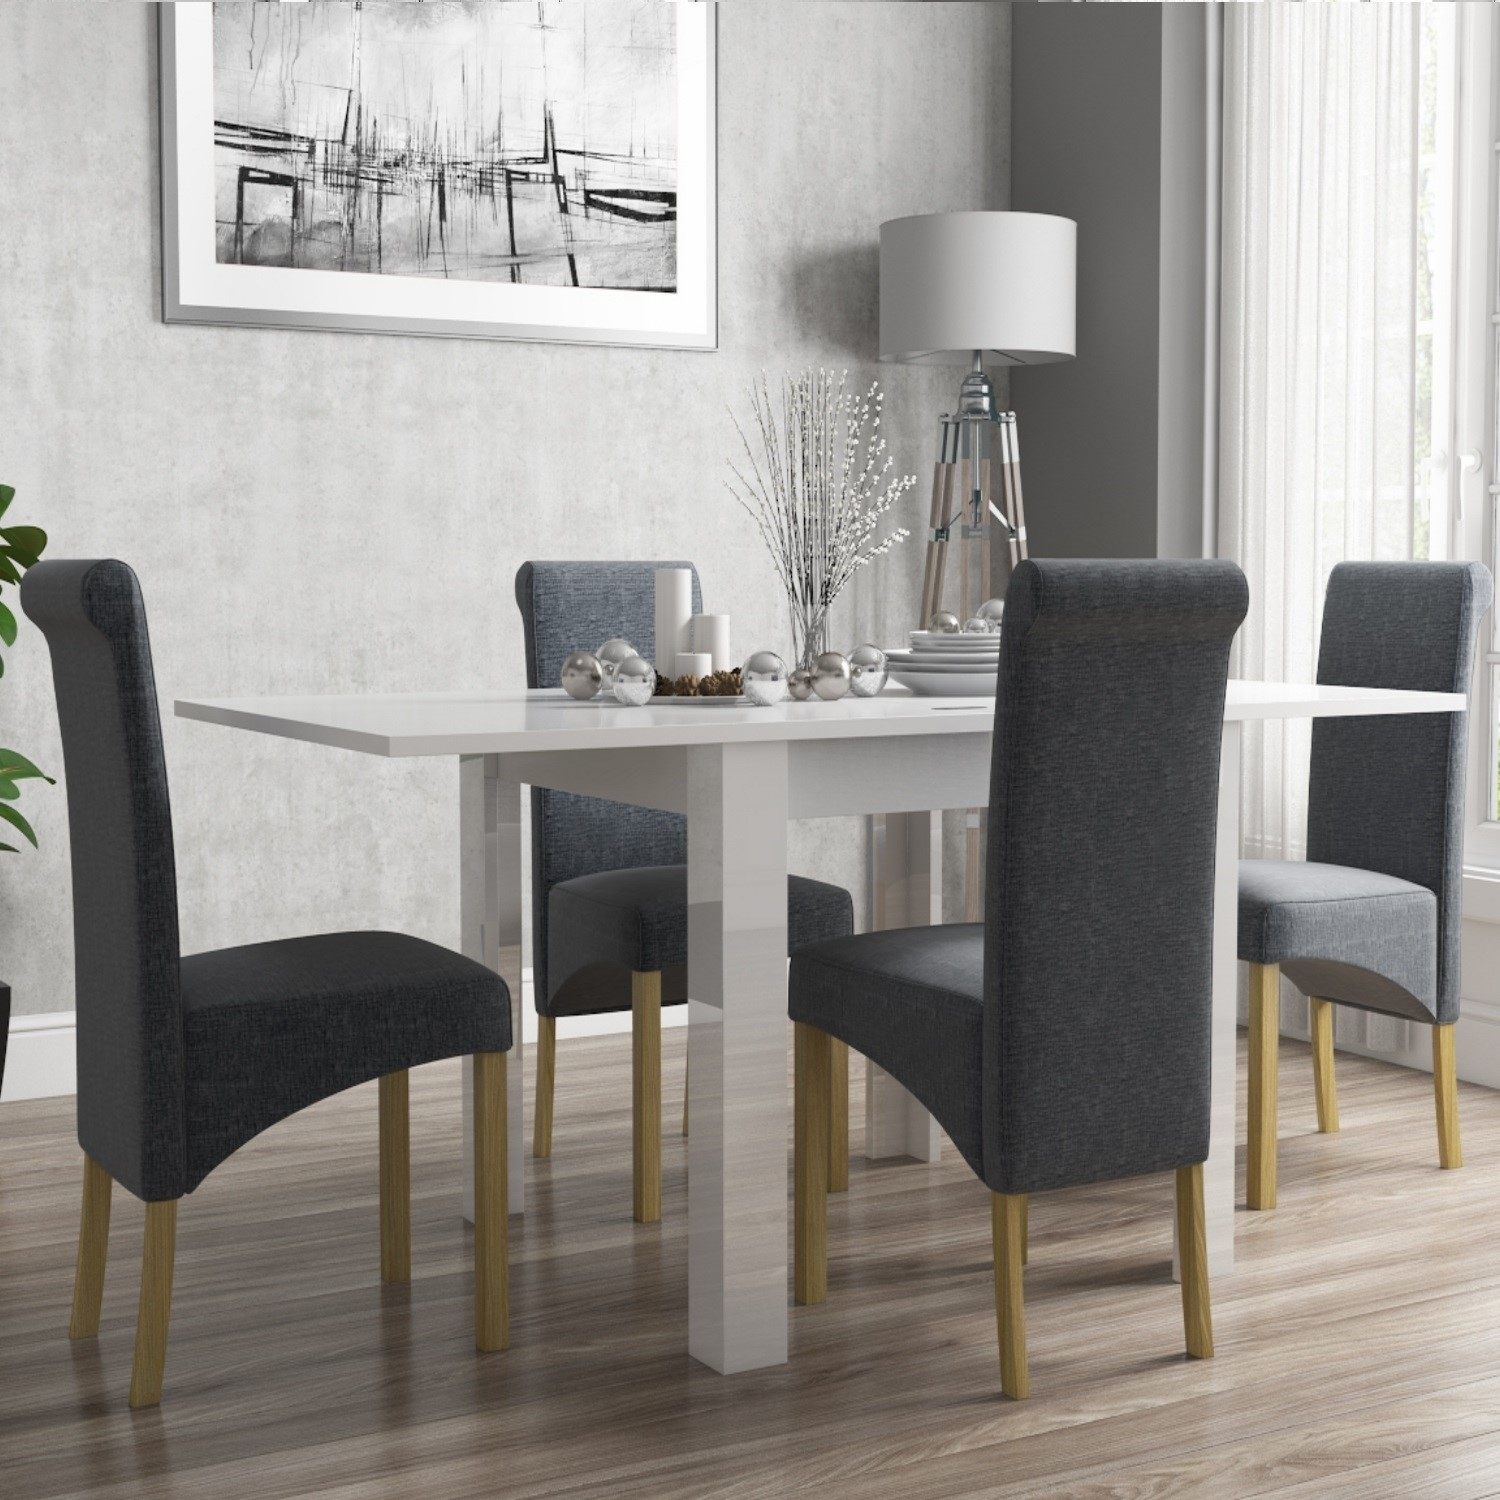 Vivienne Flip Top White Gloss Dining Table And 4 Grey Roll